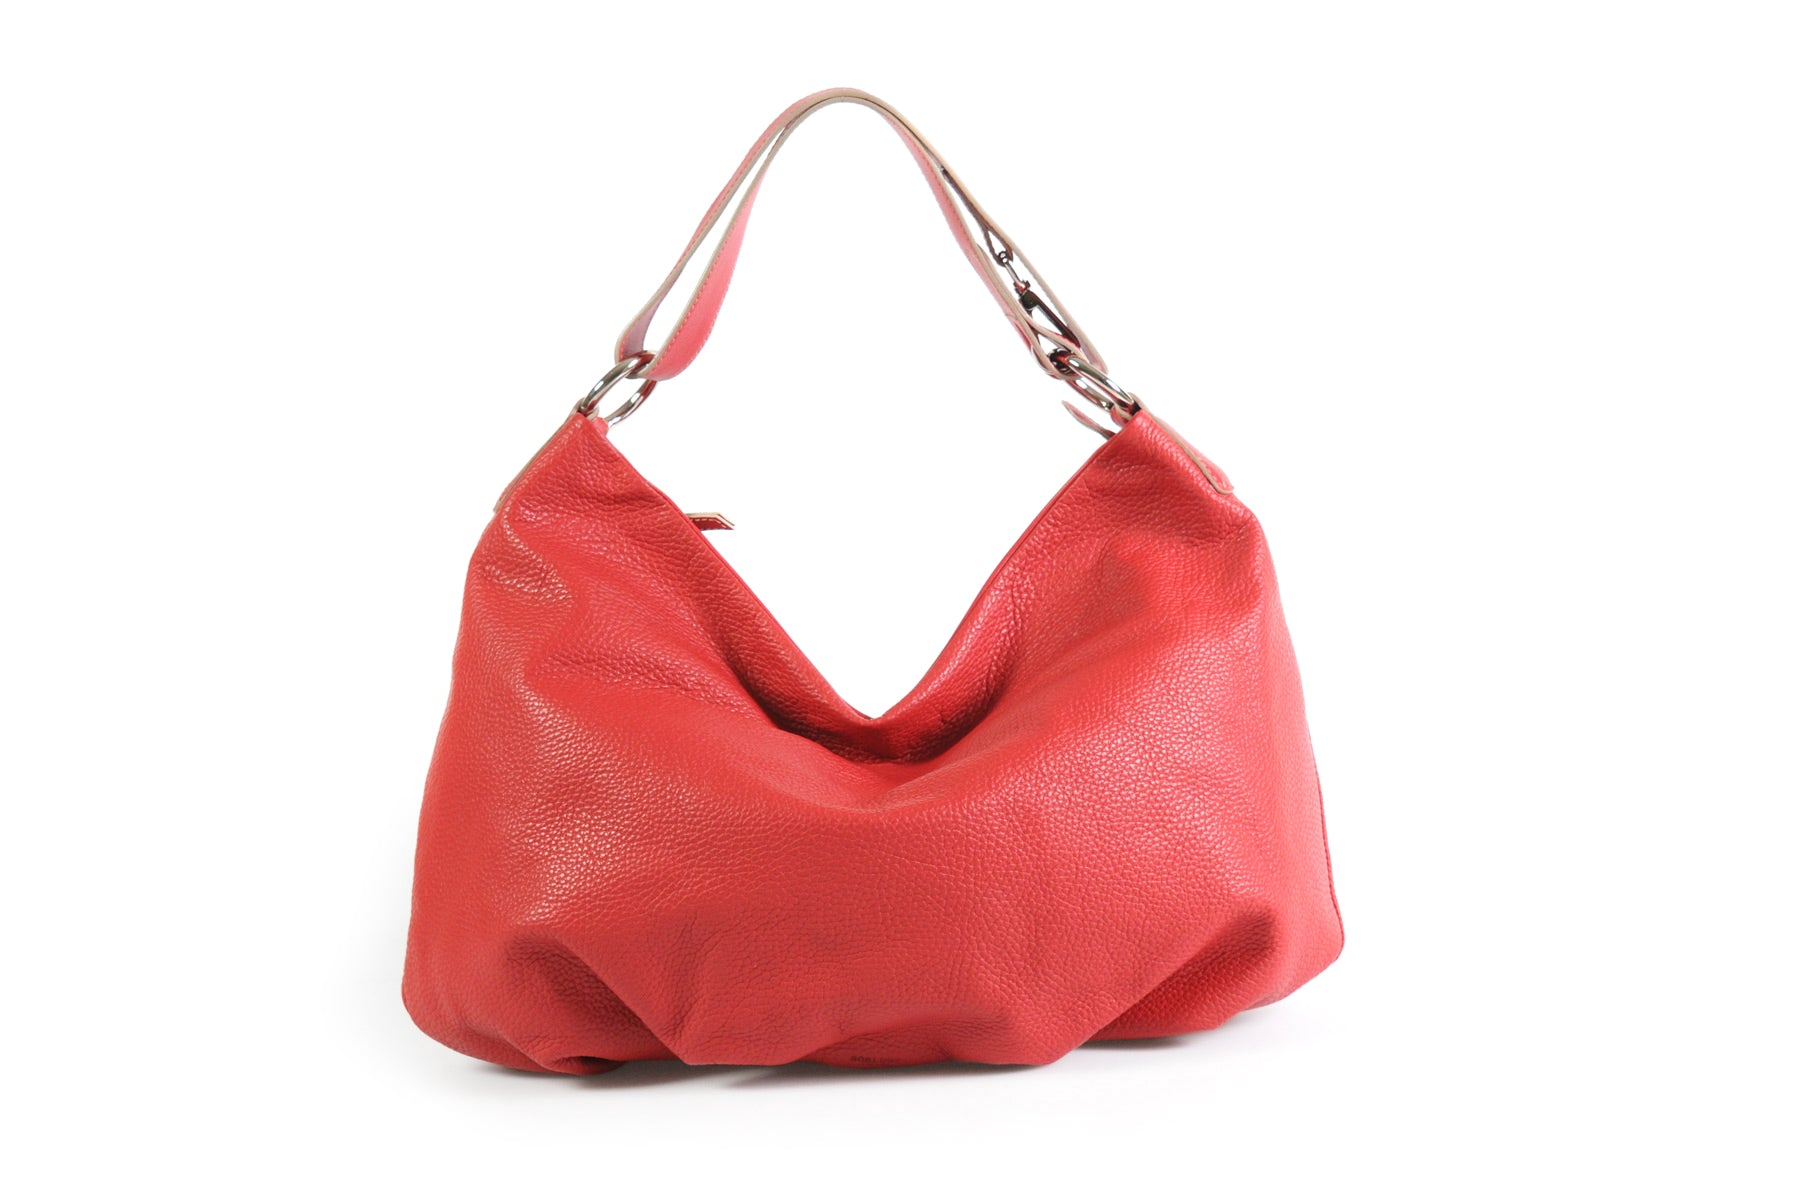 Handmade Italian Leather Handbag - Bologna - Lava Red